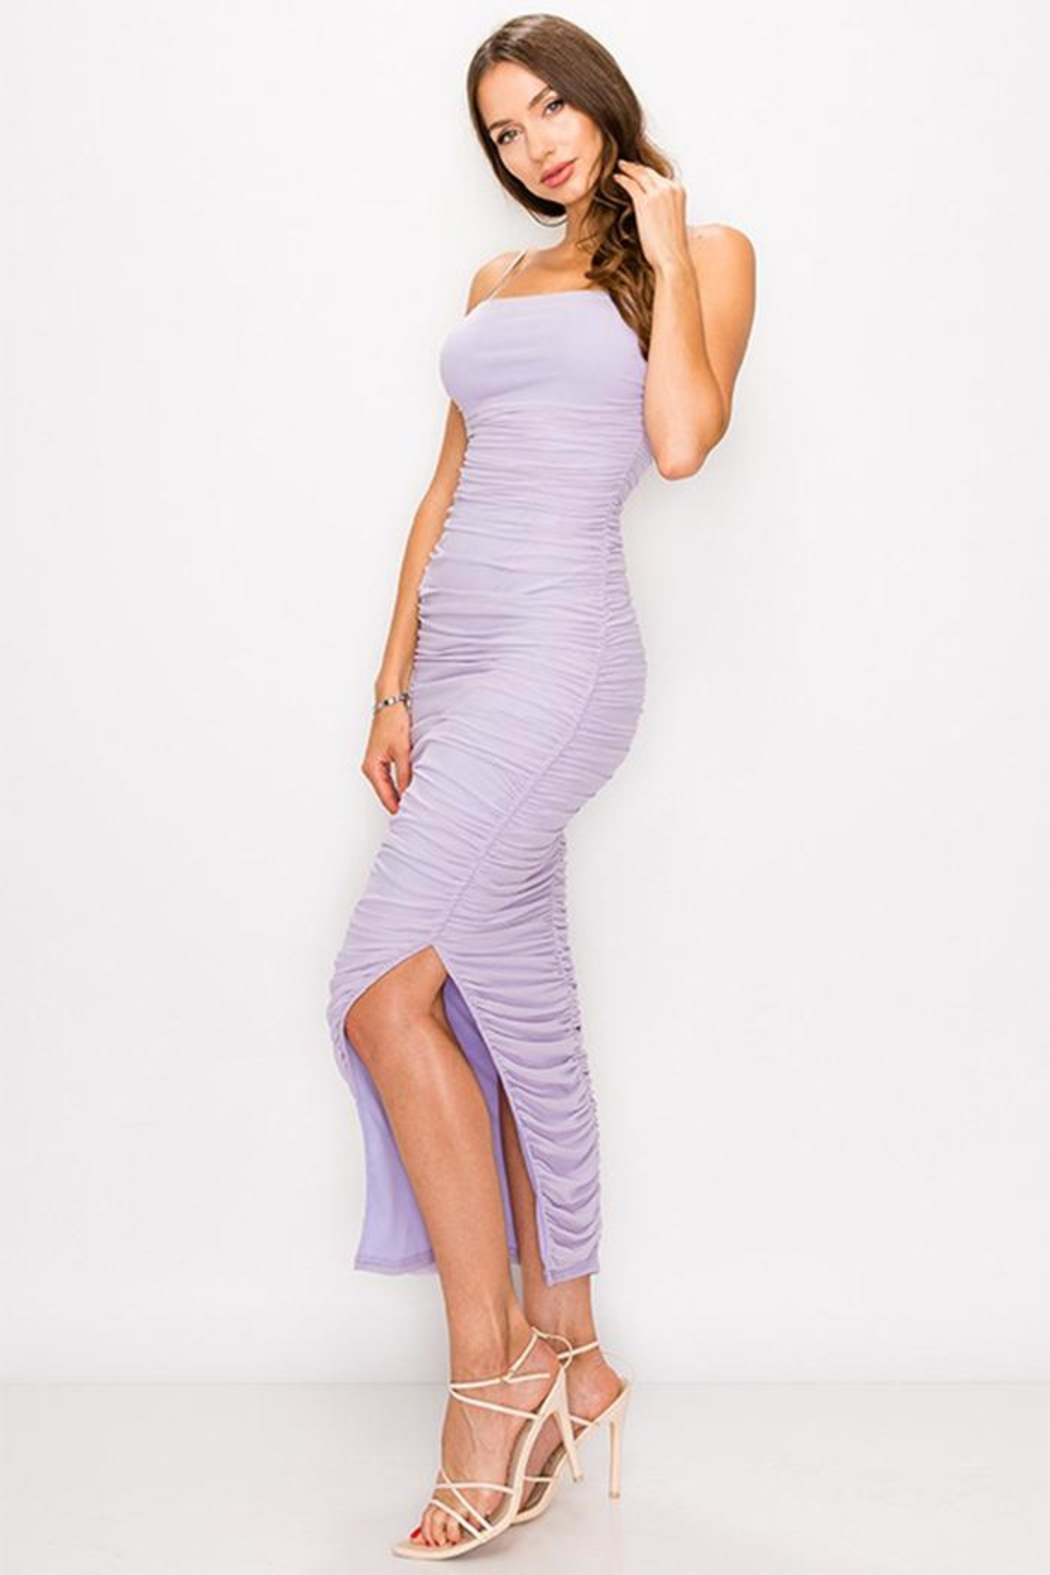 privy Ruched Mesh Dress - Side Cropped Image